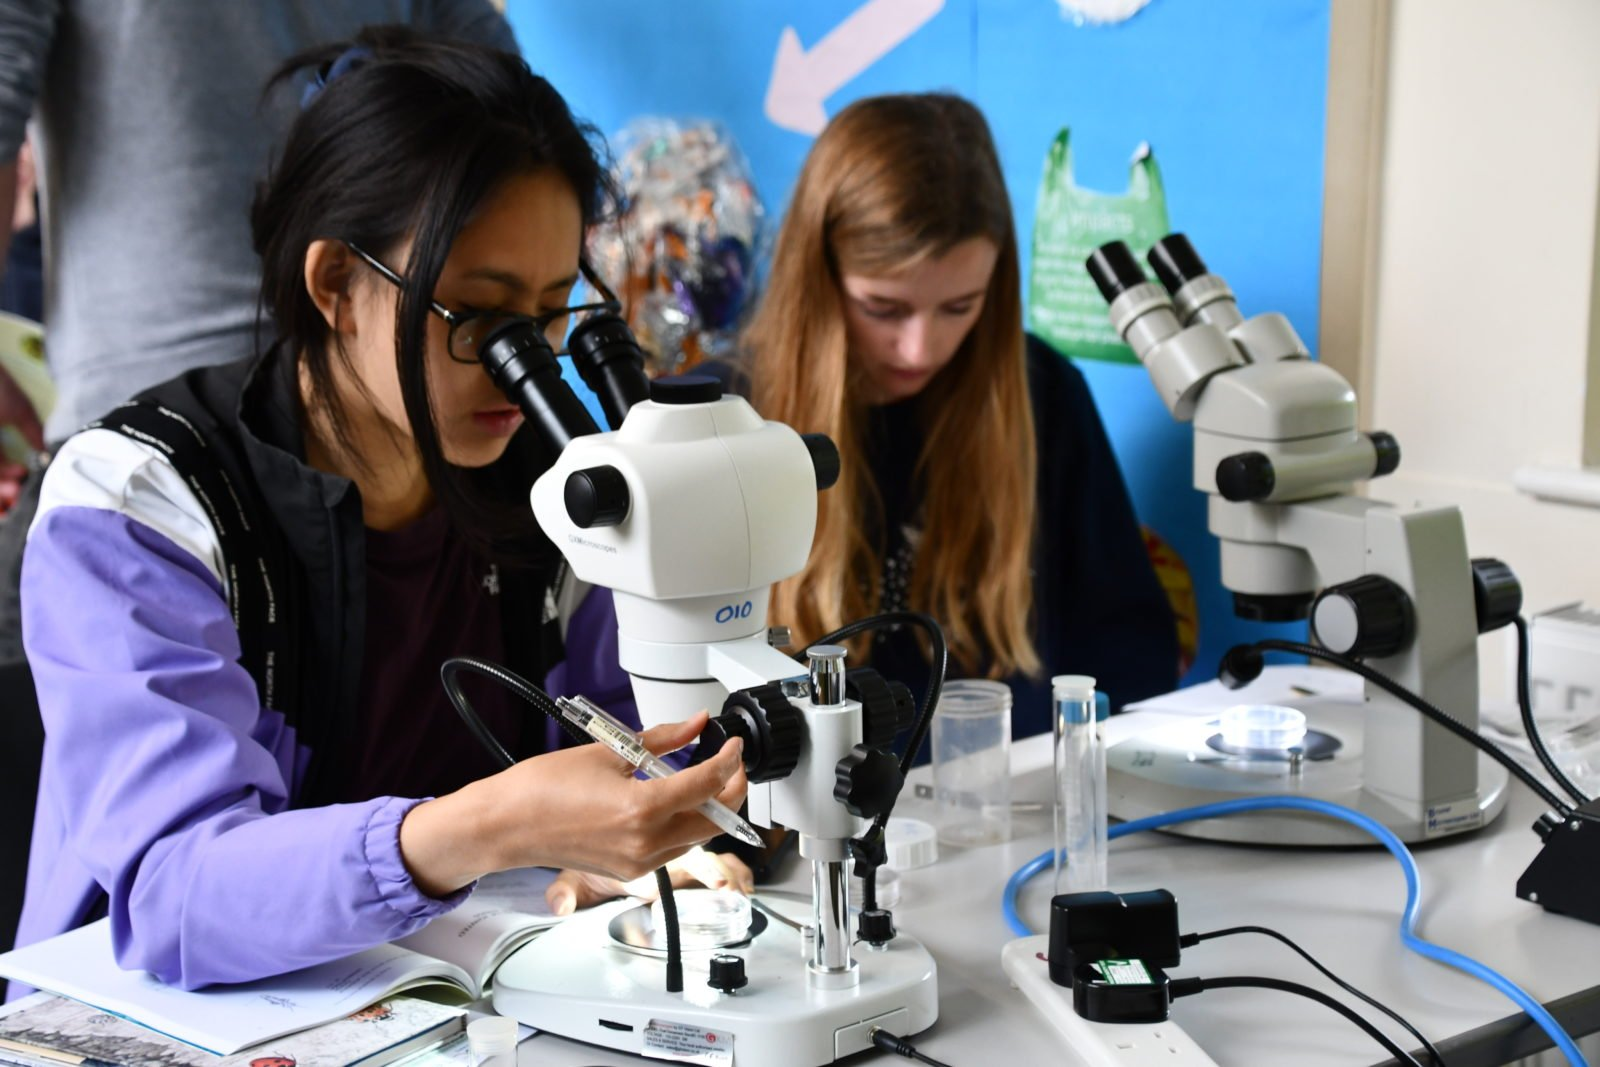 Young people looking in to microscopes